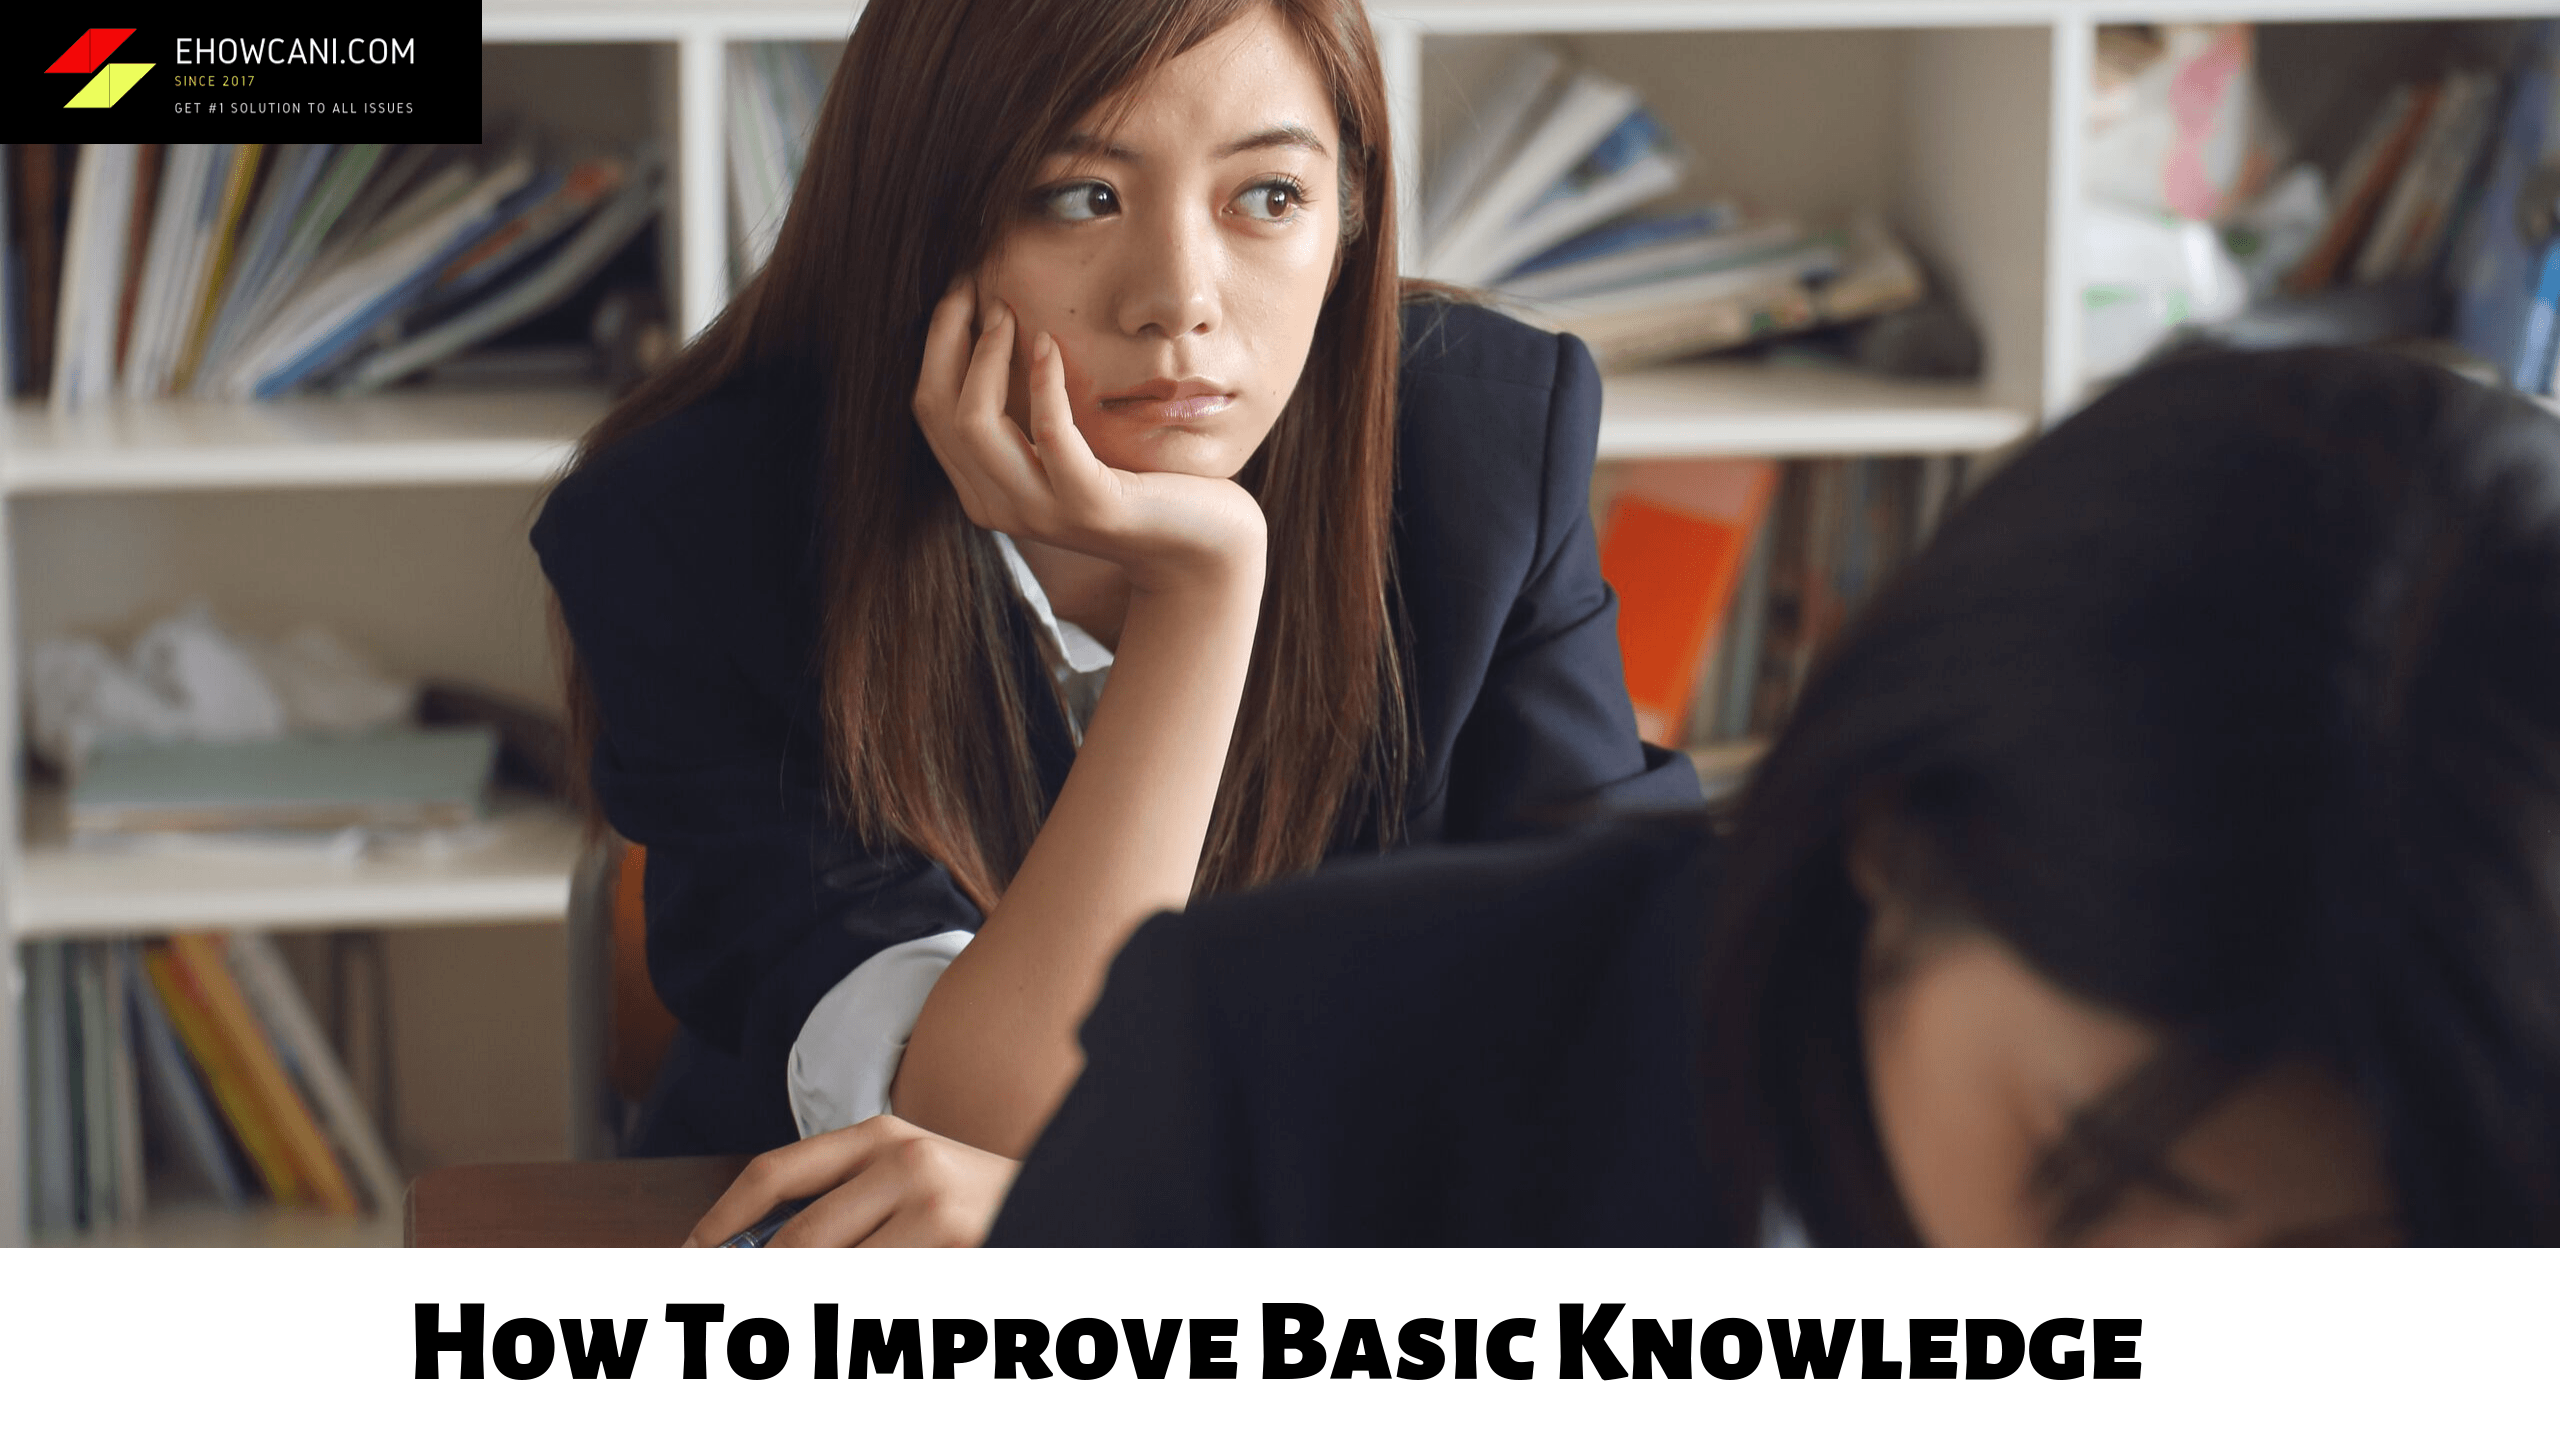 How To Improve Basic Knowledge